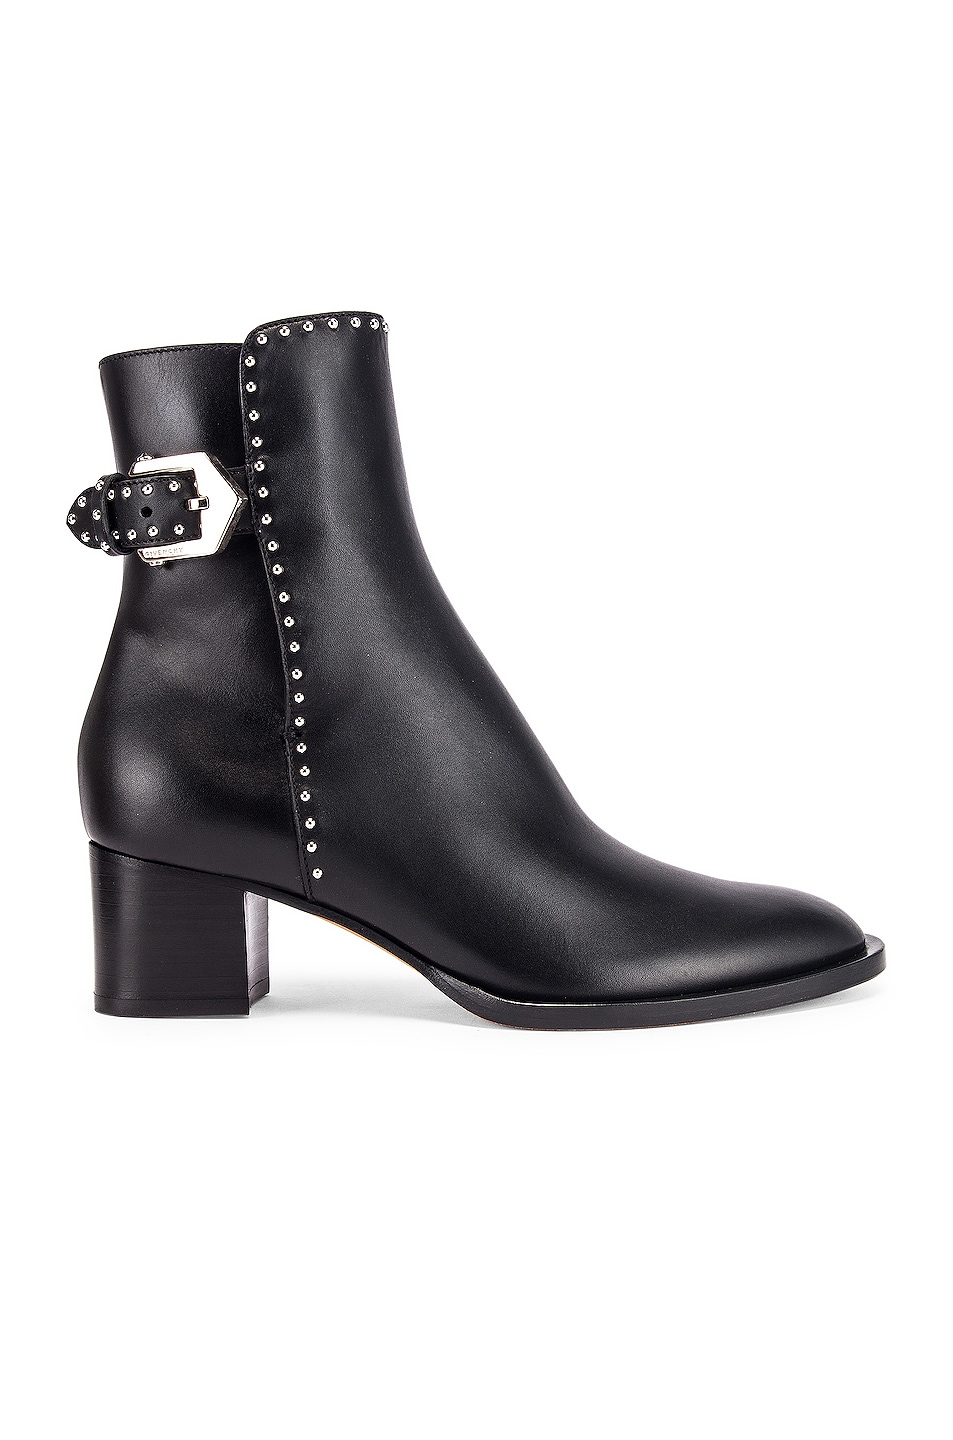 Image 1 of Givenchy Elegant Studs Ankle Boots in Black